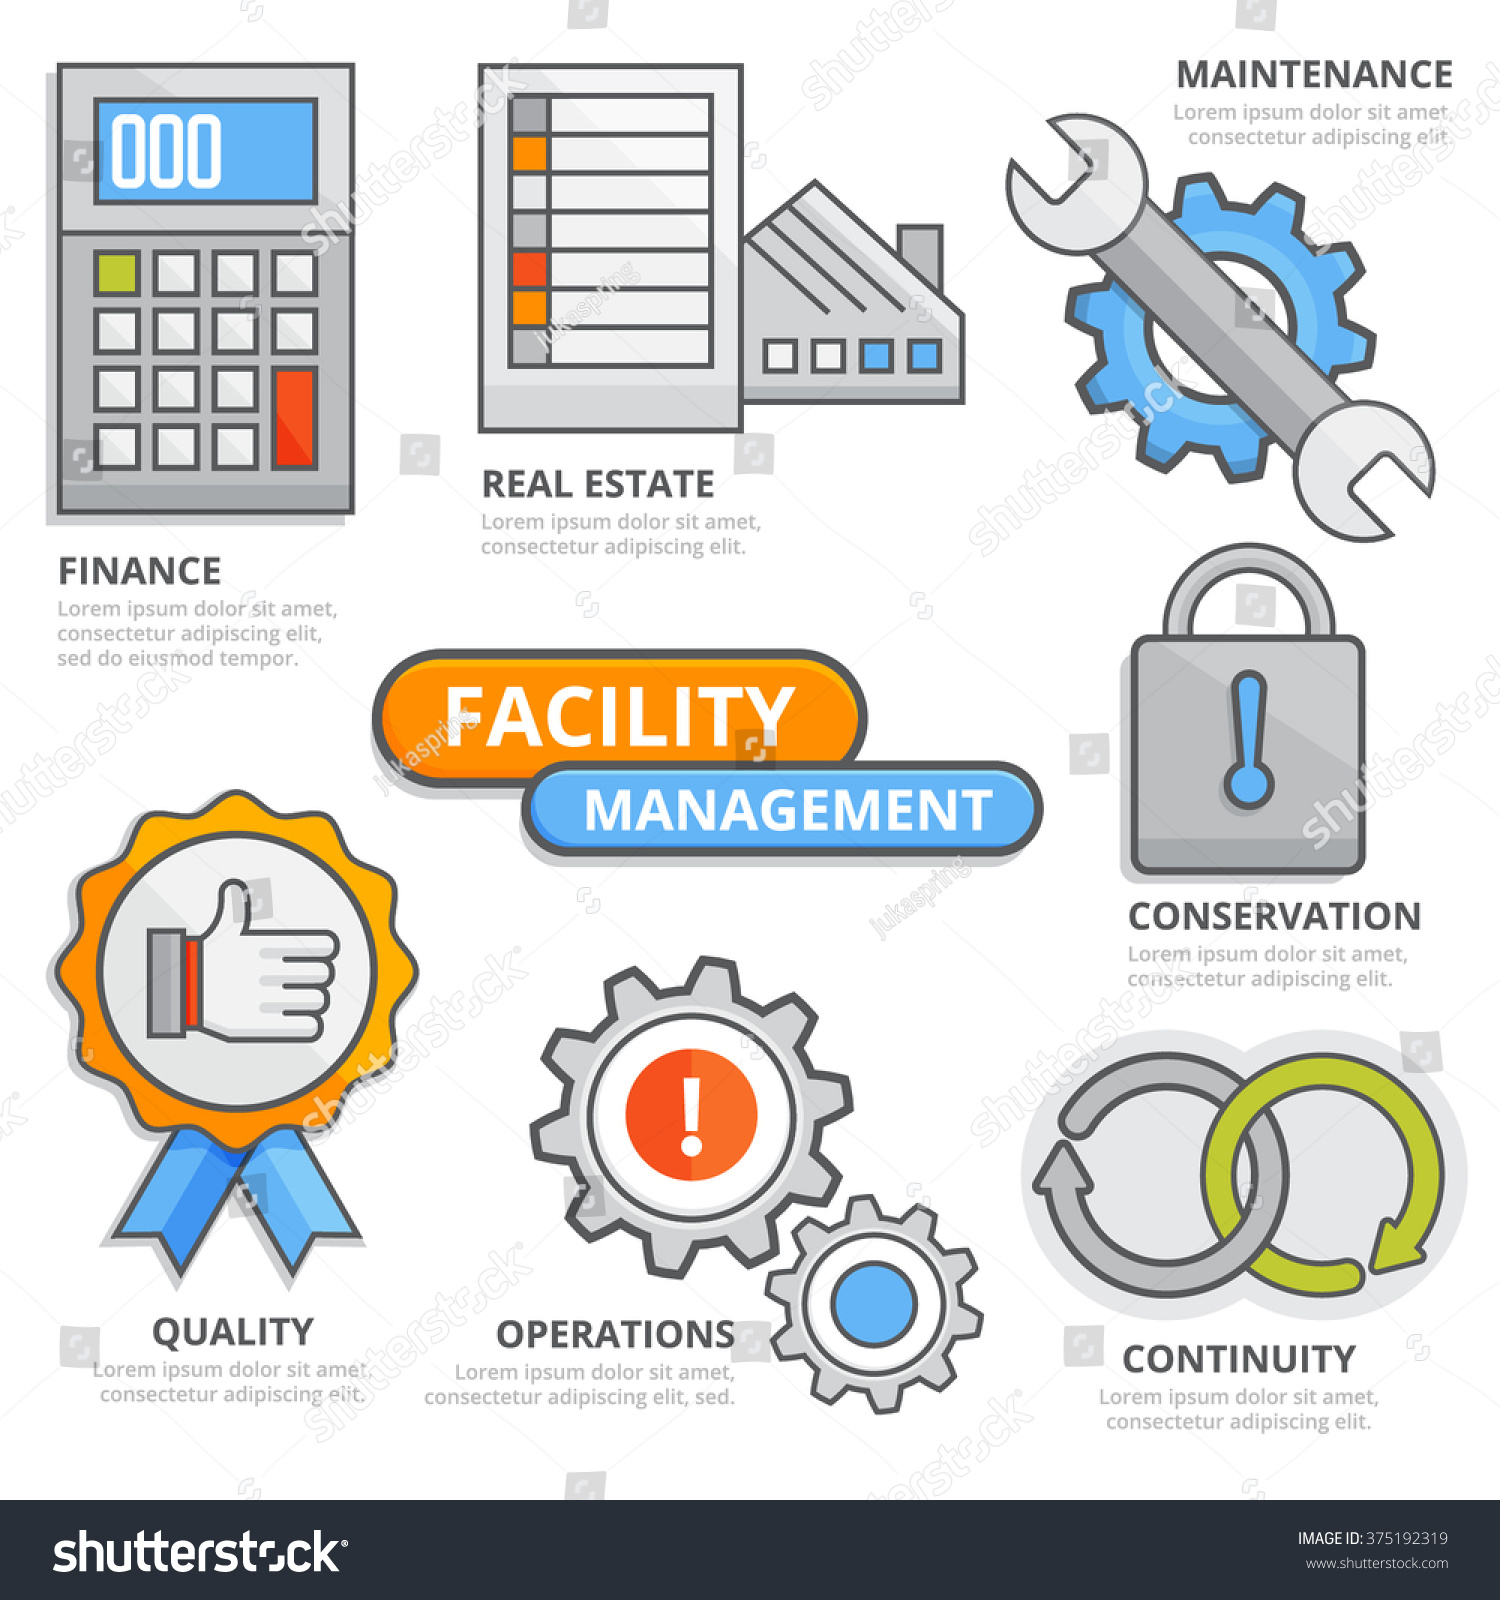 Maintenance Operations Stem Facility: Facility Management Design Concept, Finance, Real Estate